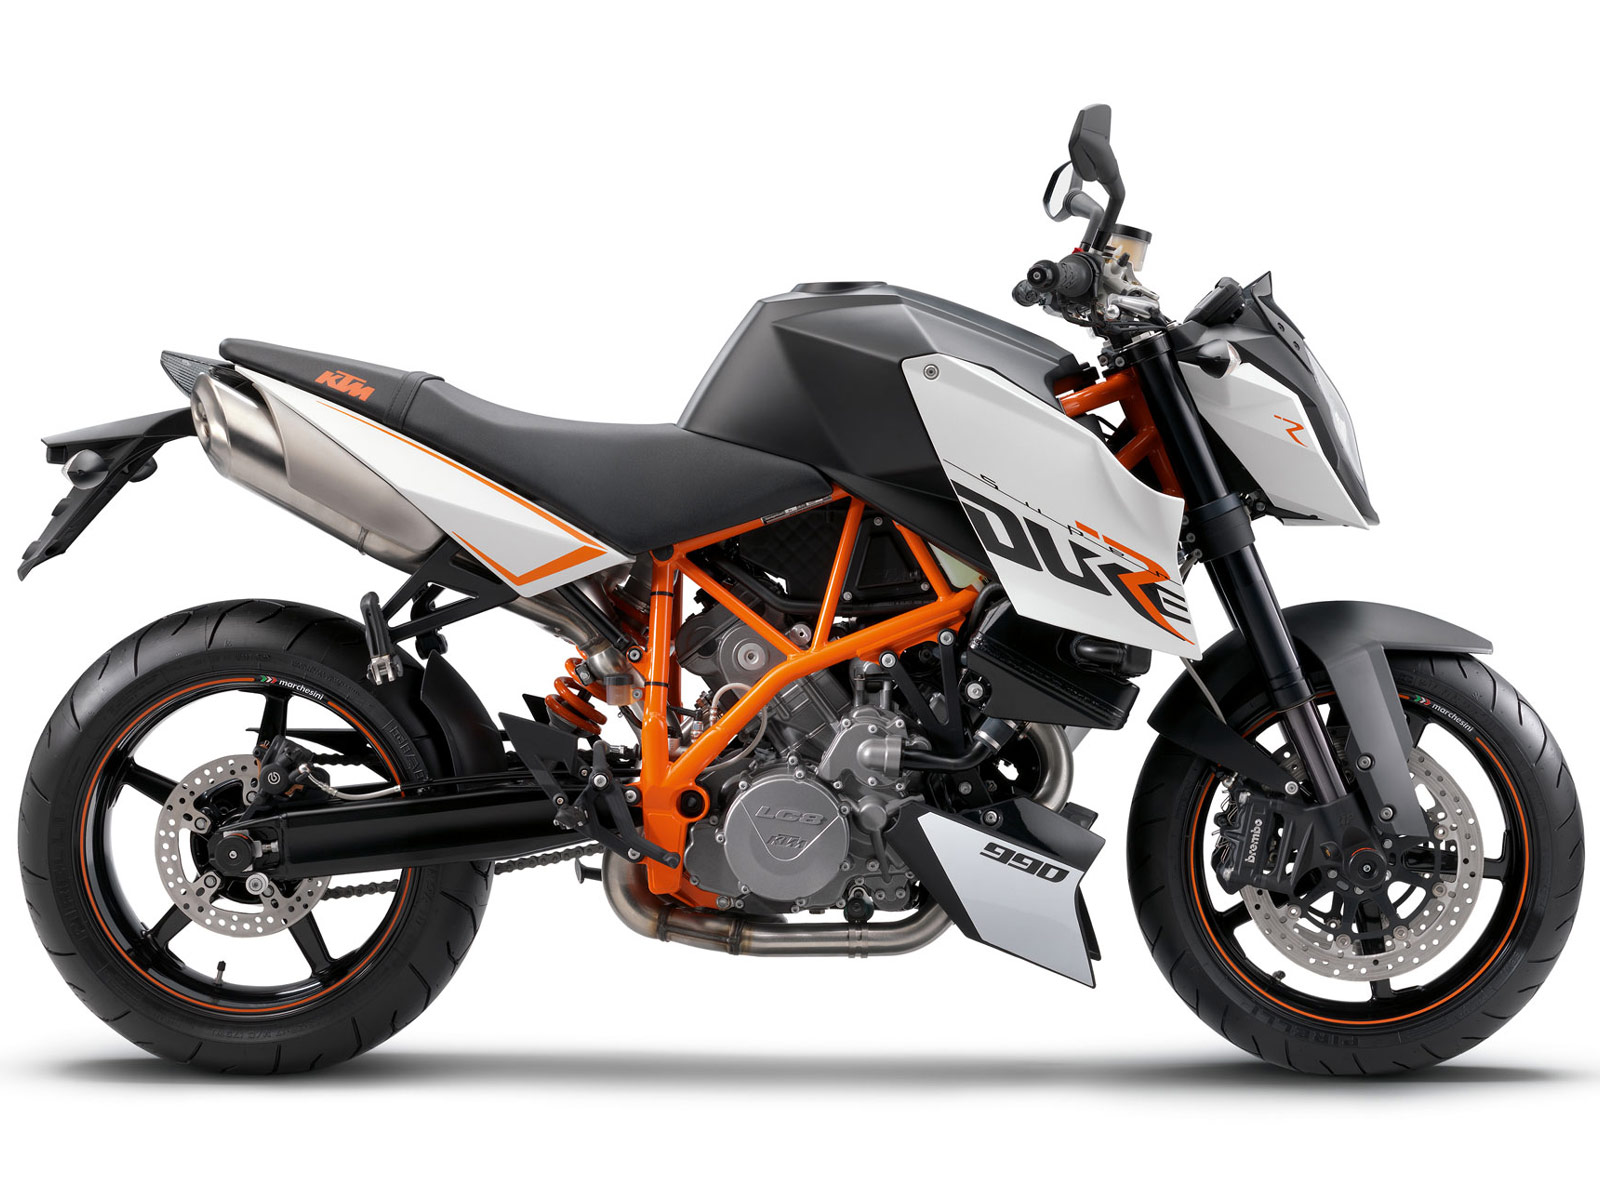 2012 ktm 990 duke r motorcycle review specifications wallpapers. Black Bedroom Furniture Sets. Home Design Ideas